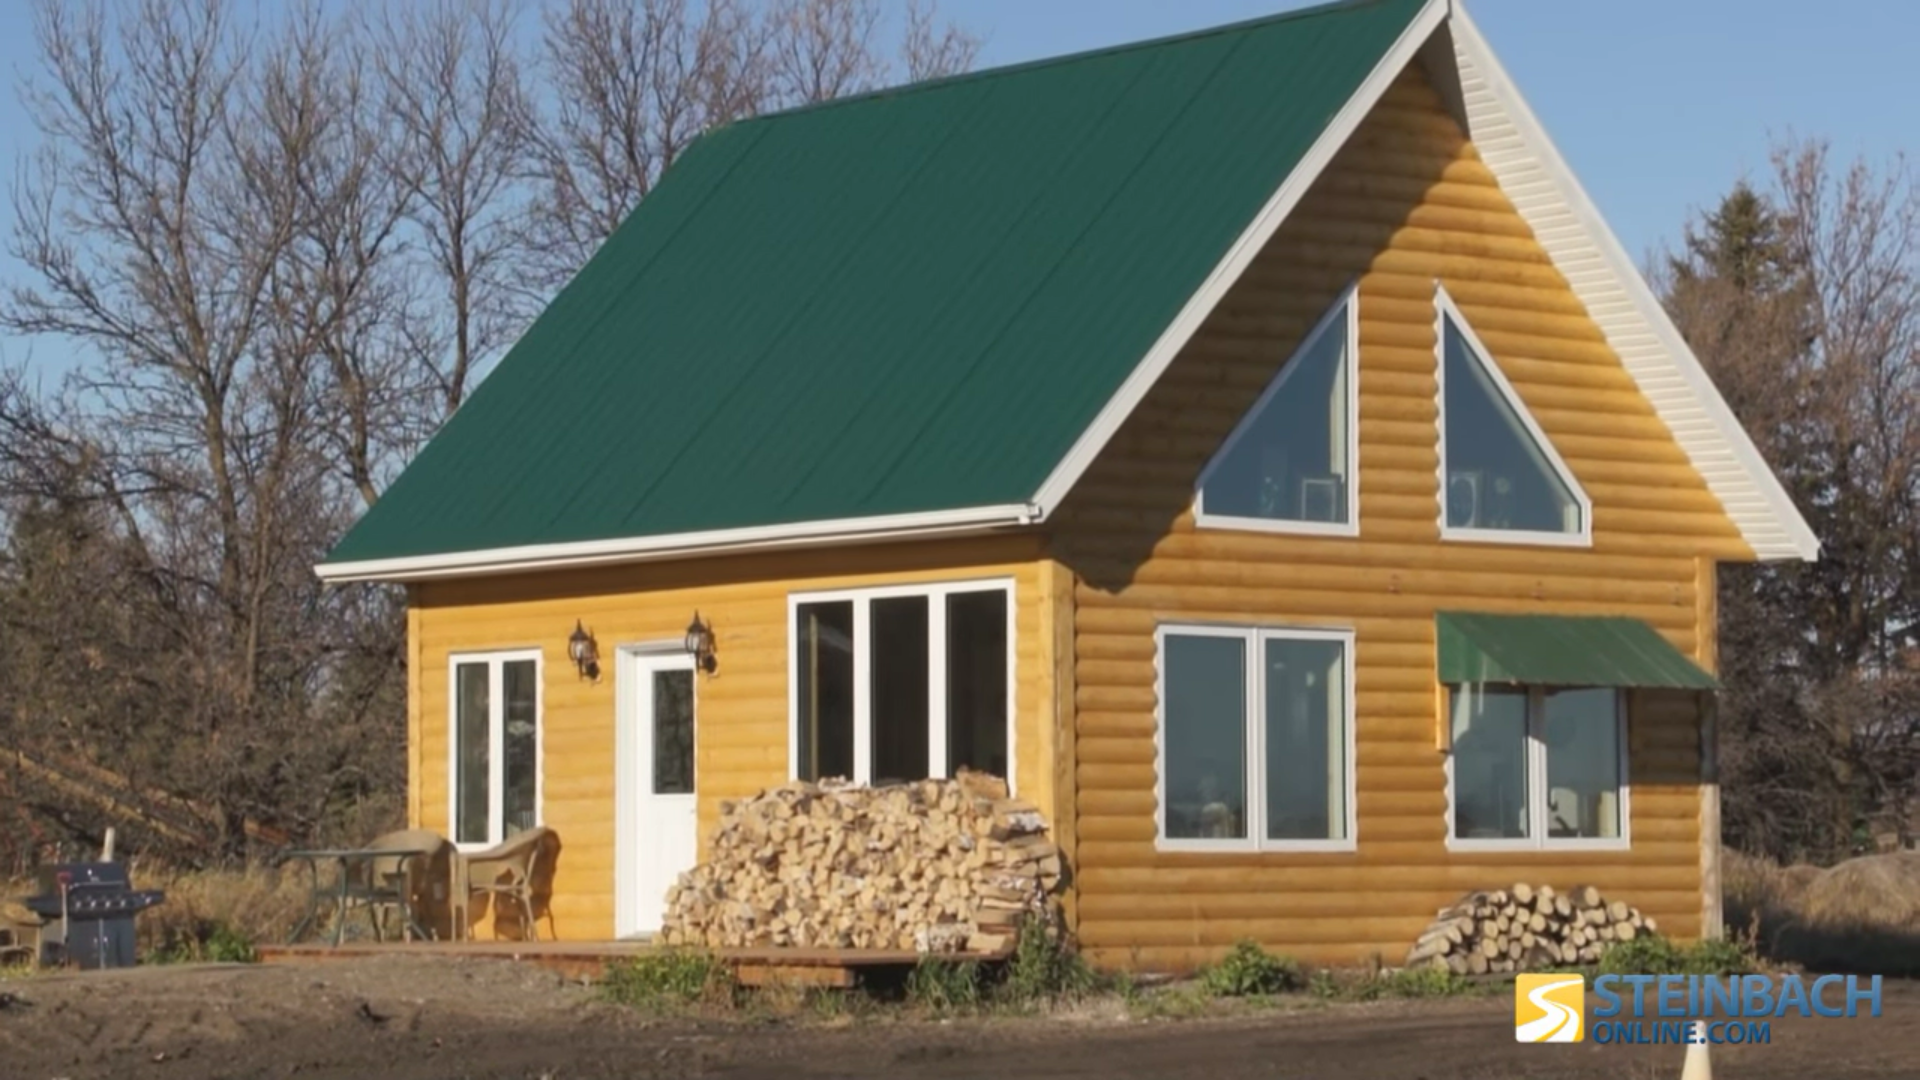 Tiny house on the prairie from 3 000 to 480 sq ft for 3000 square foot home